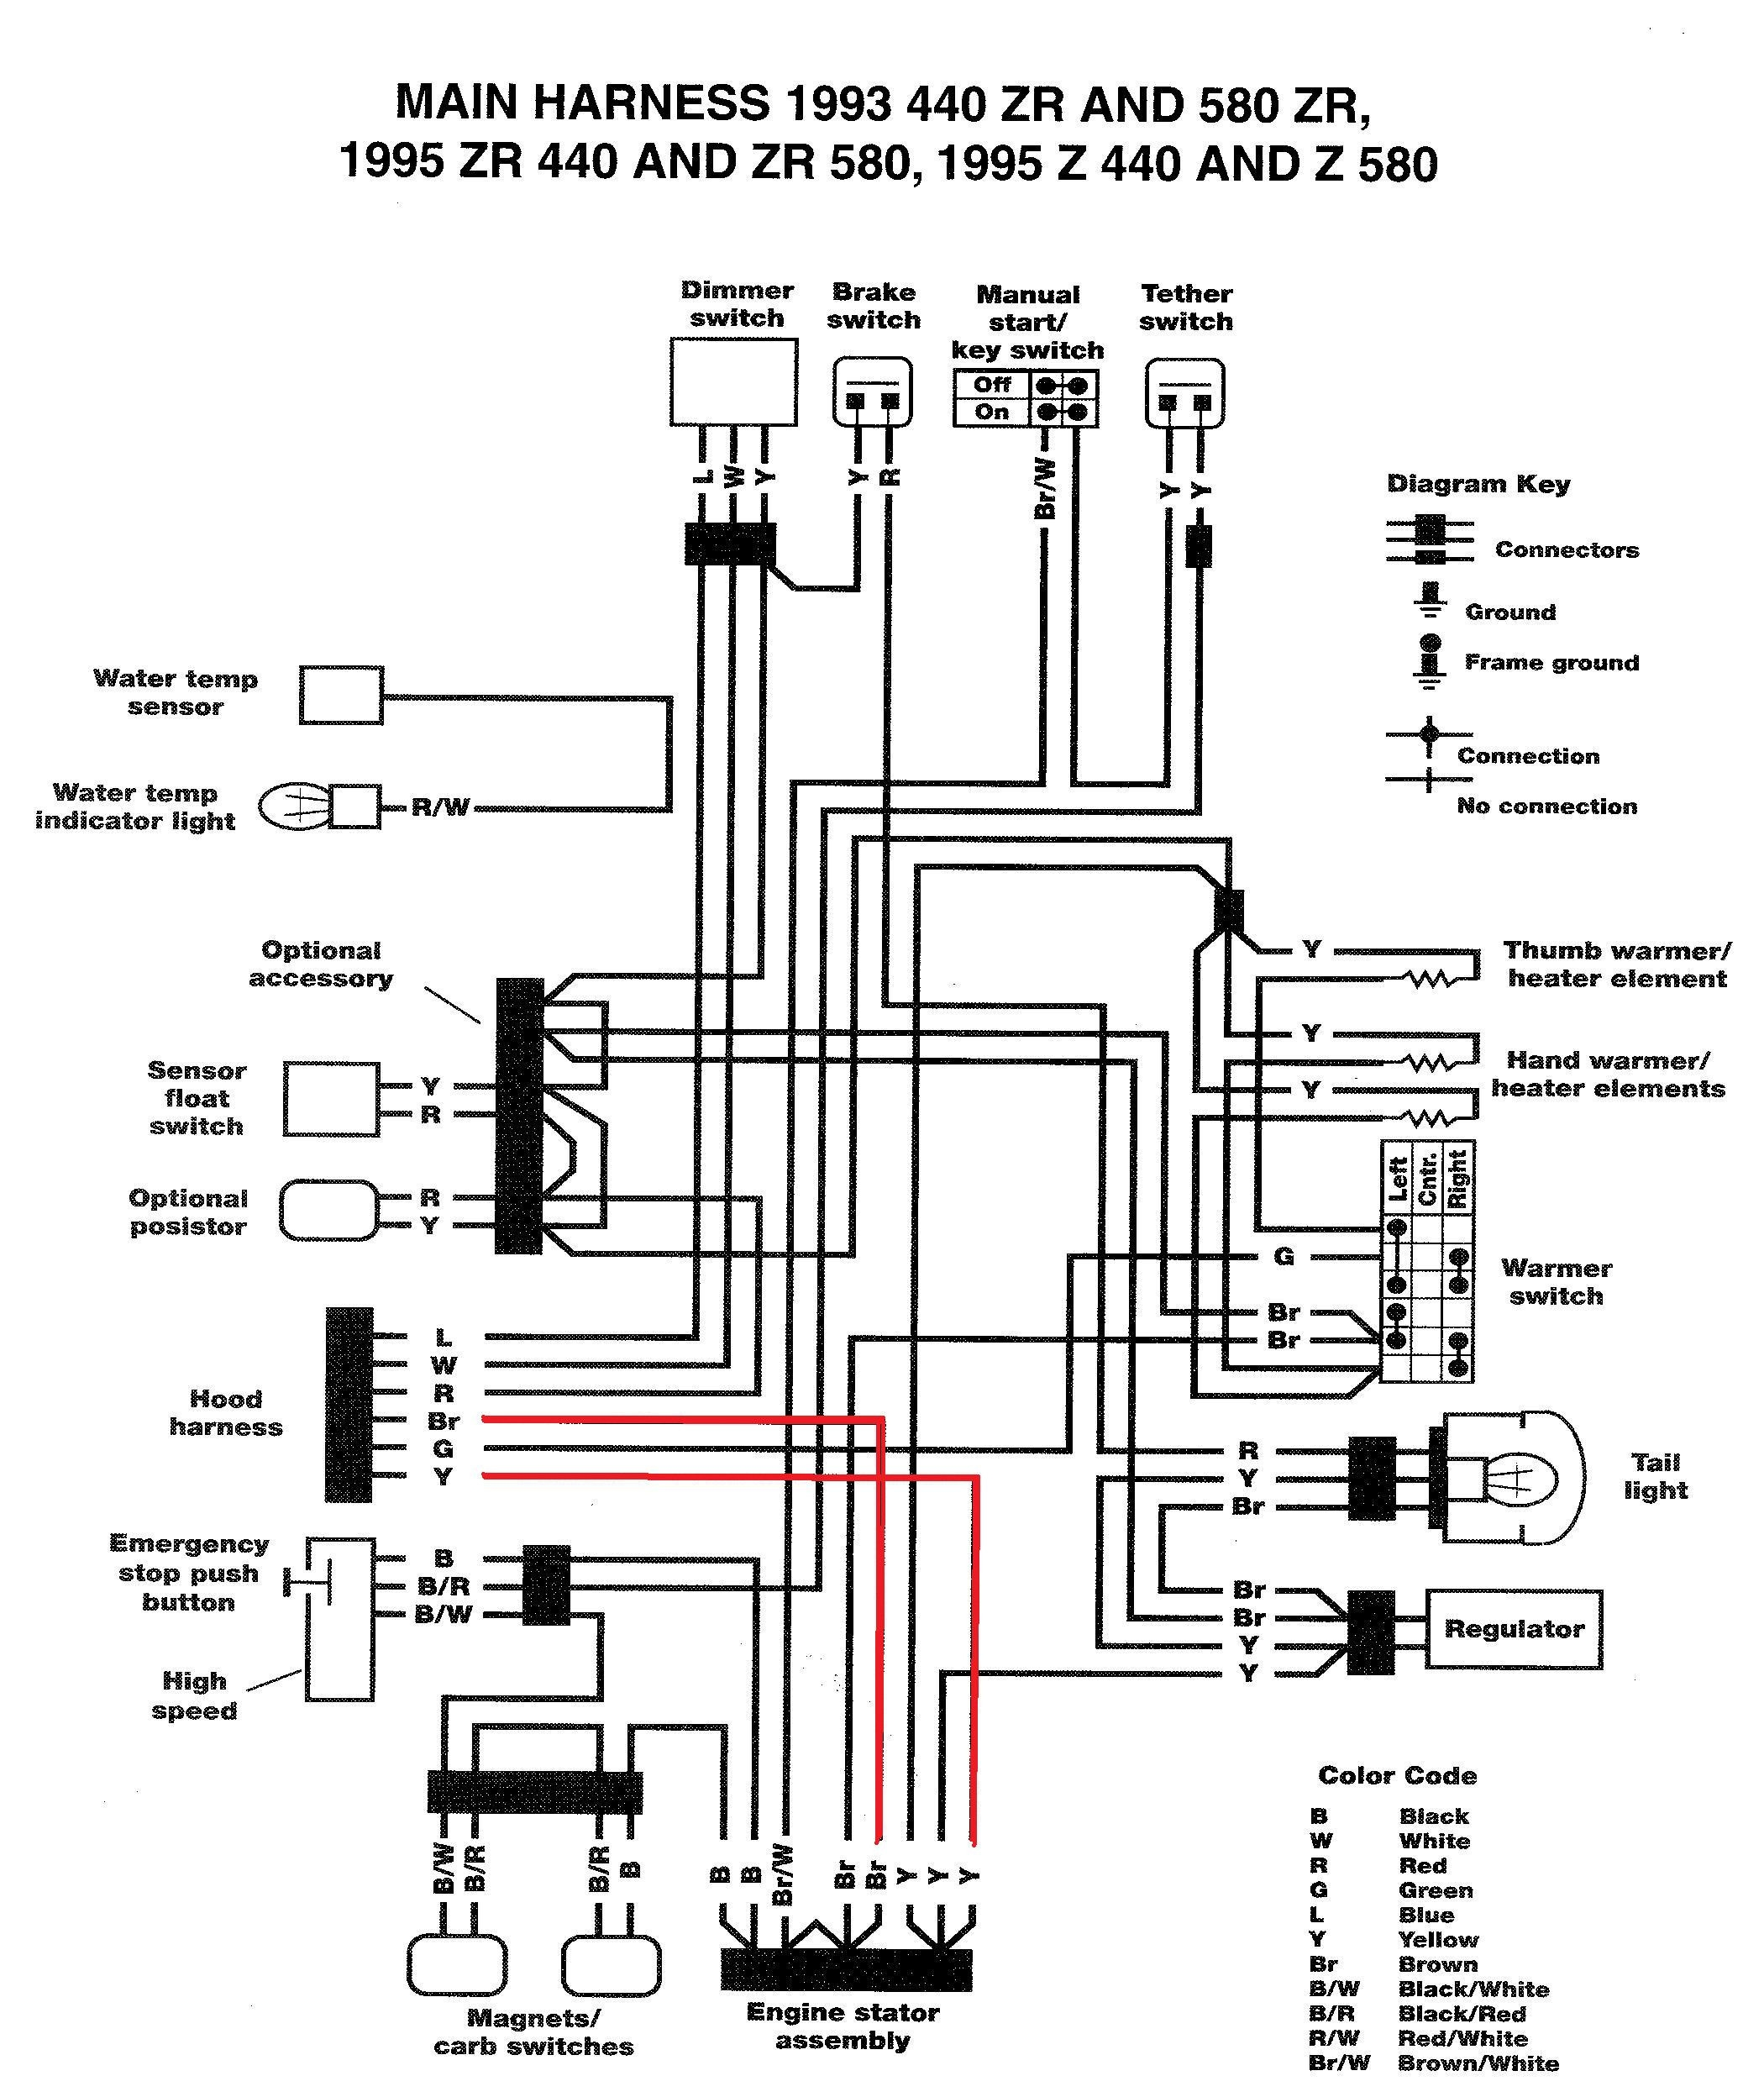 Yamaha Grizzly 660 Wiring Diagram | Free Wiring Diagram